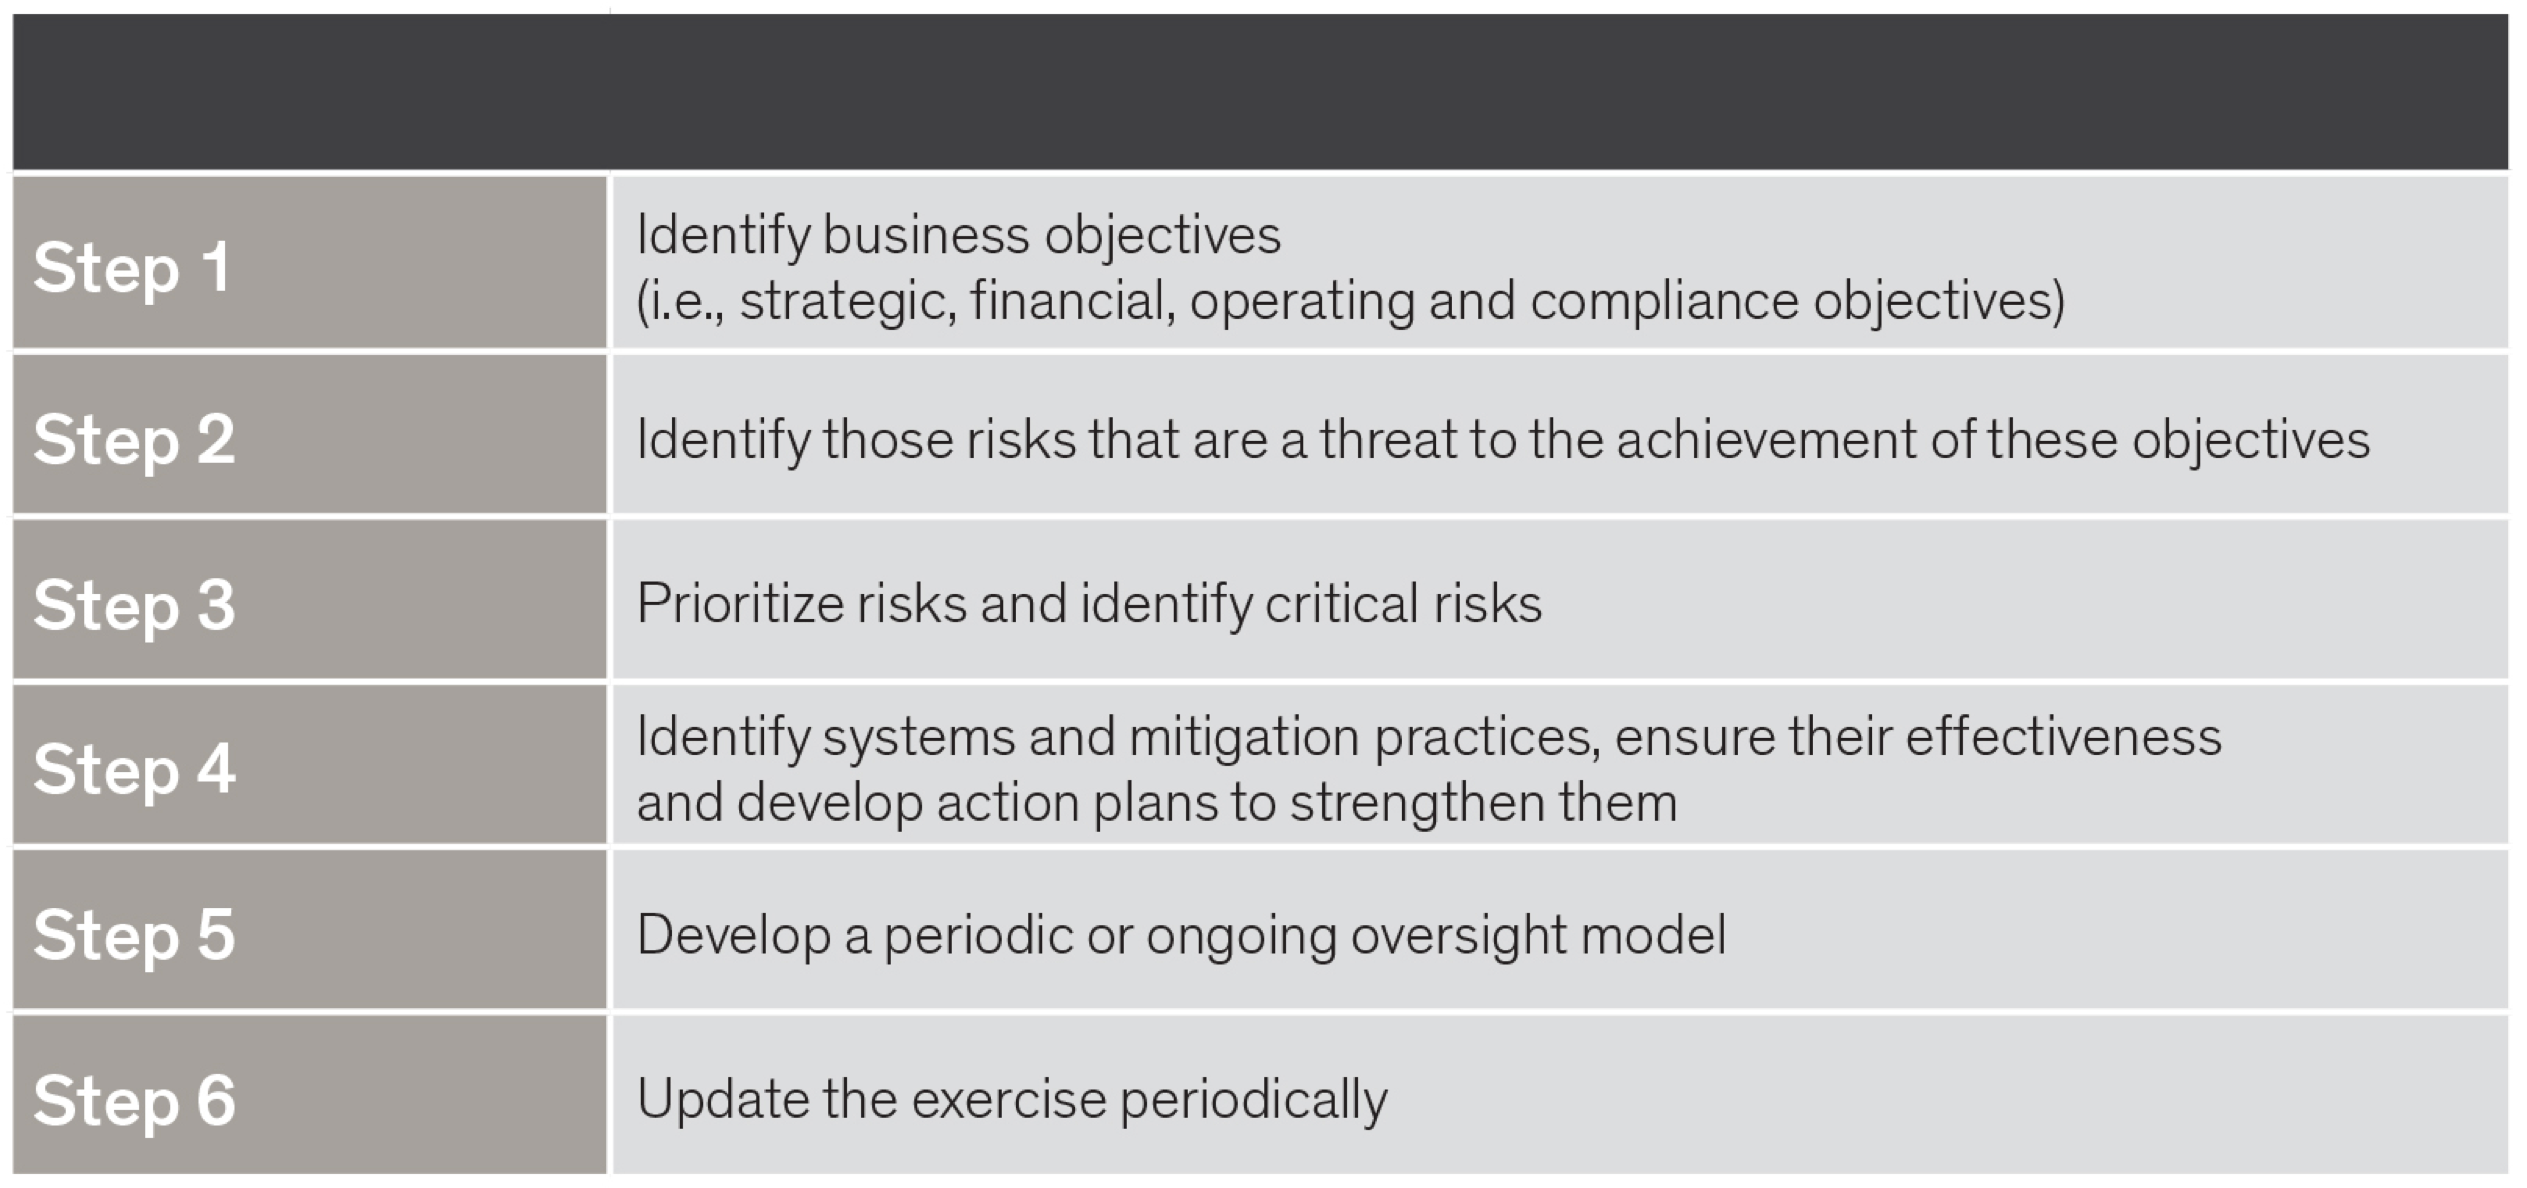 6 steps - identify business objectives; identify those risks that are a threat; prioritize risks and identify critical risks; identify systems and mitigation practices; develop a periodic or ongoing oversight model; update the exercise periodically